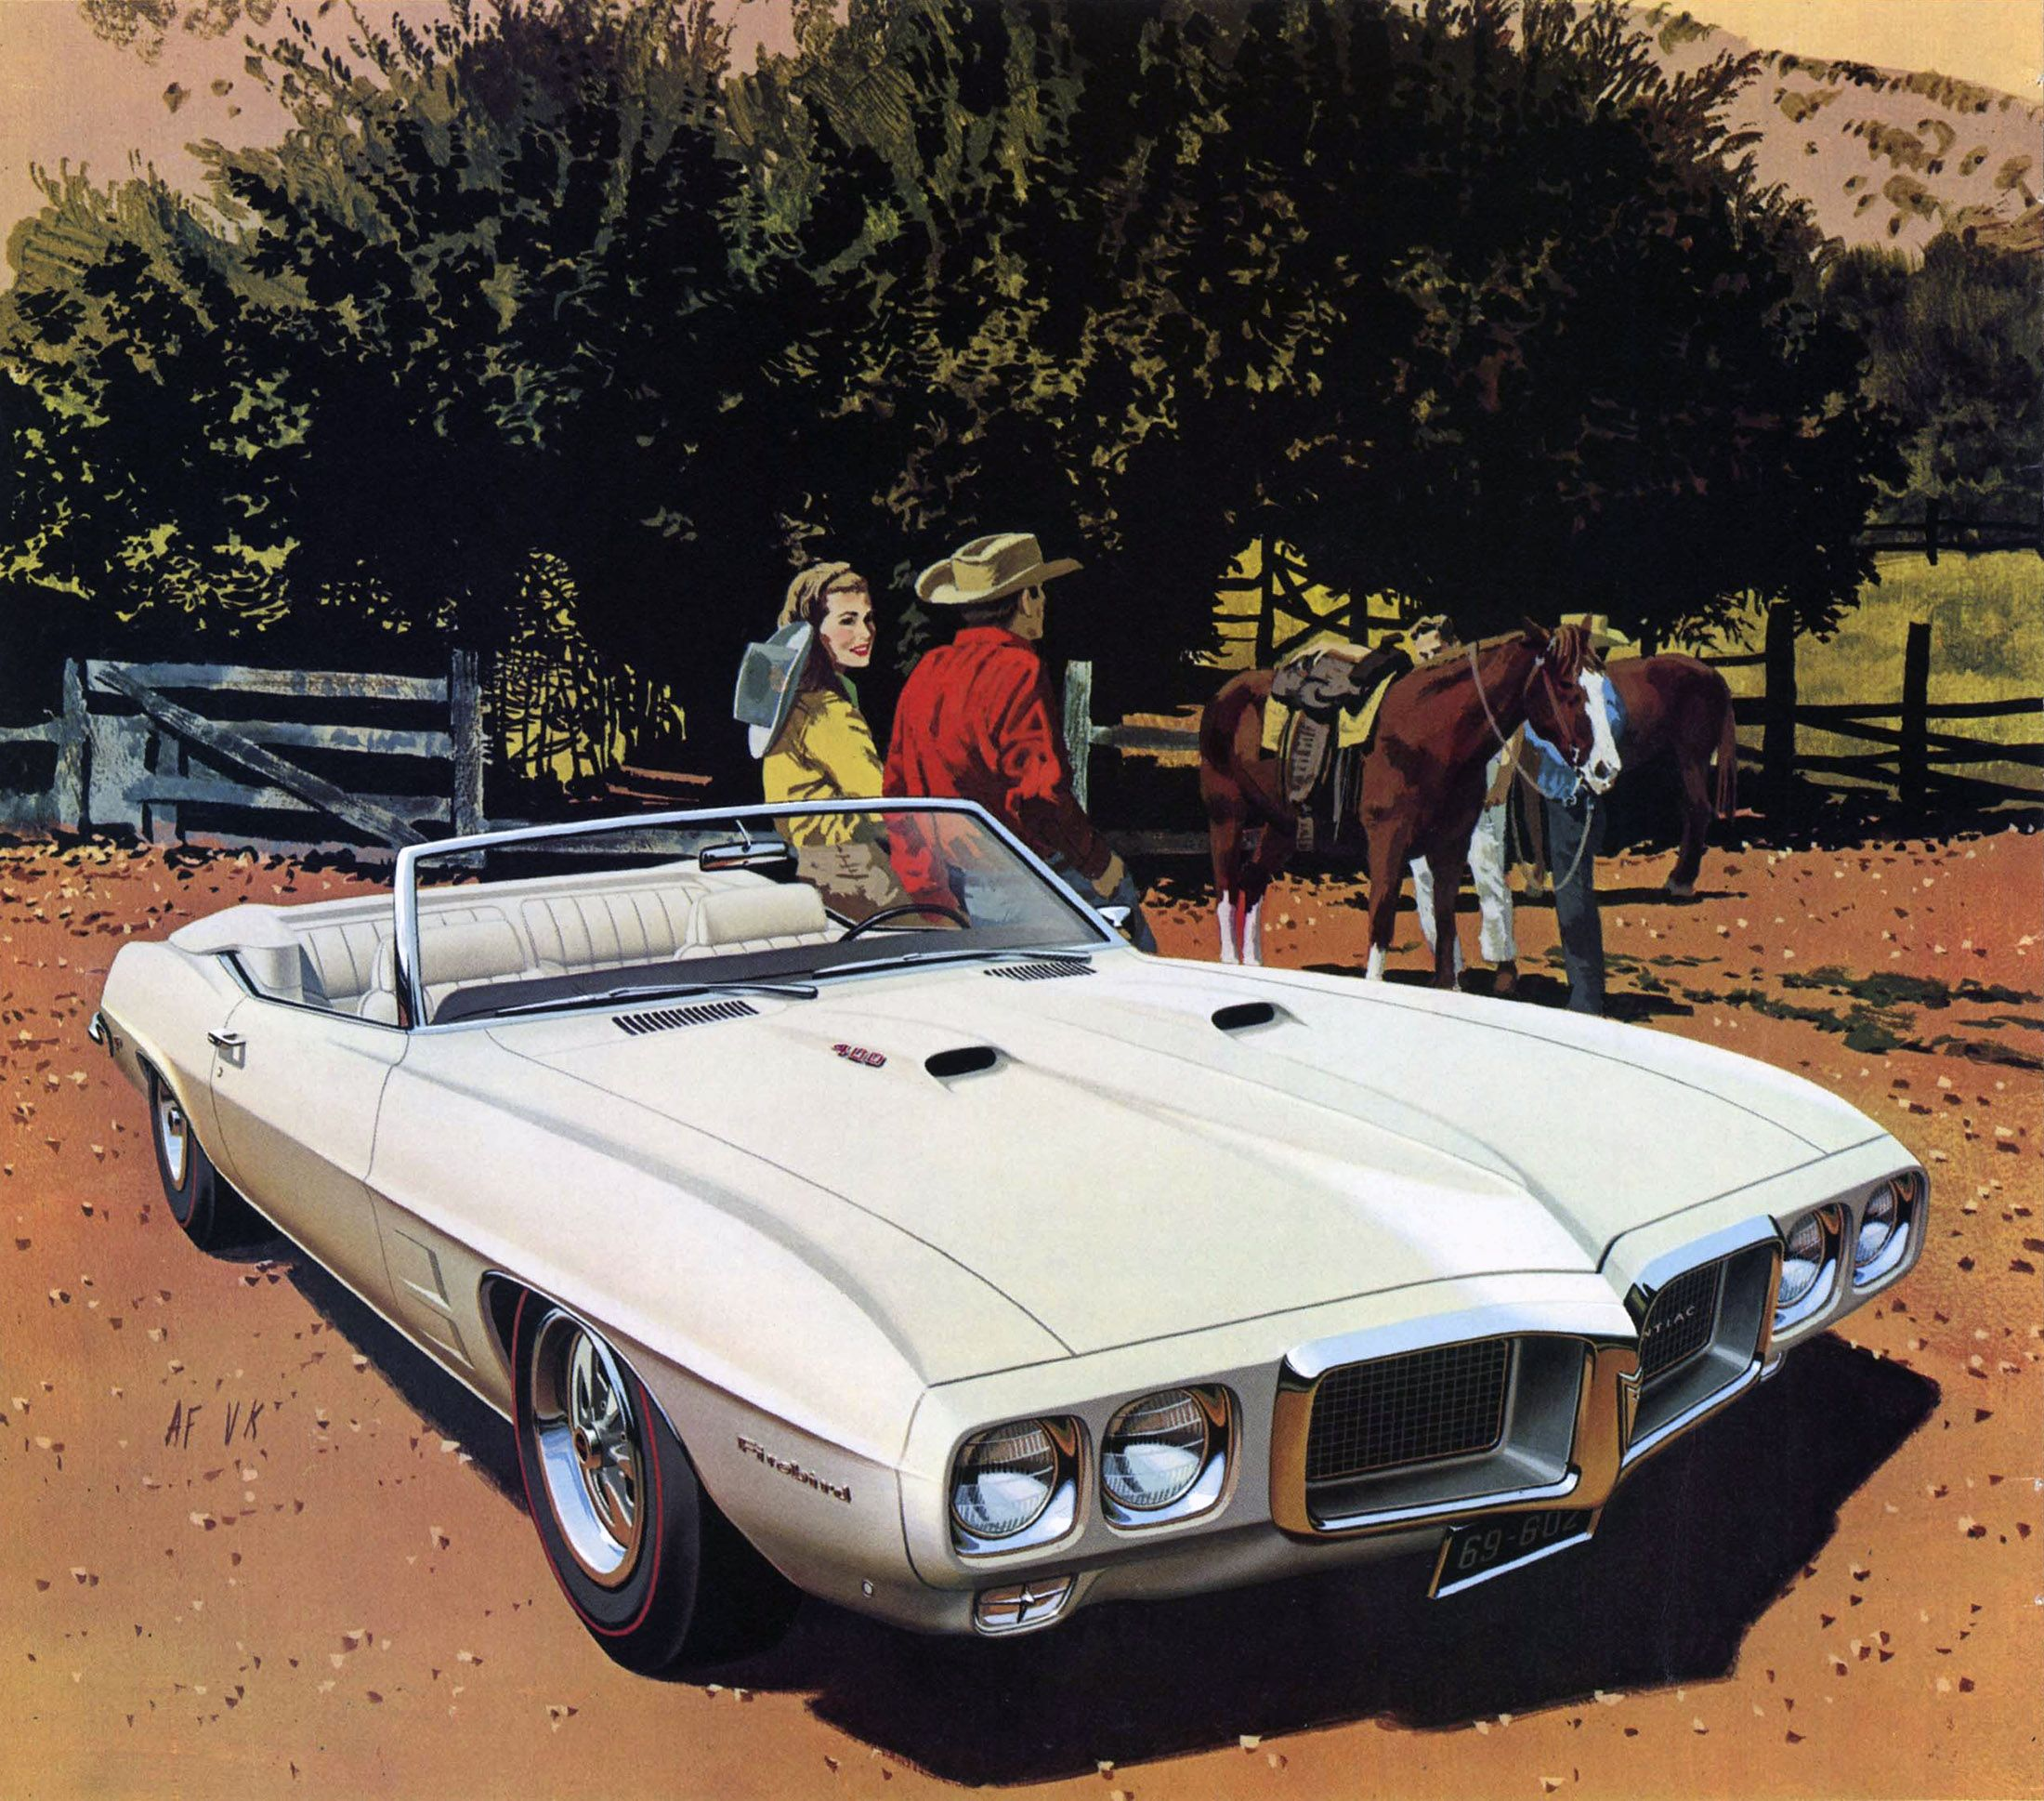 1969 pontiac firebird 400 convertible tuscon corral art fitzpatrick and van kaufman